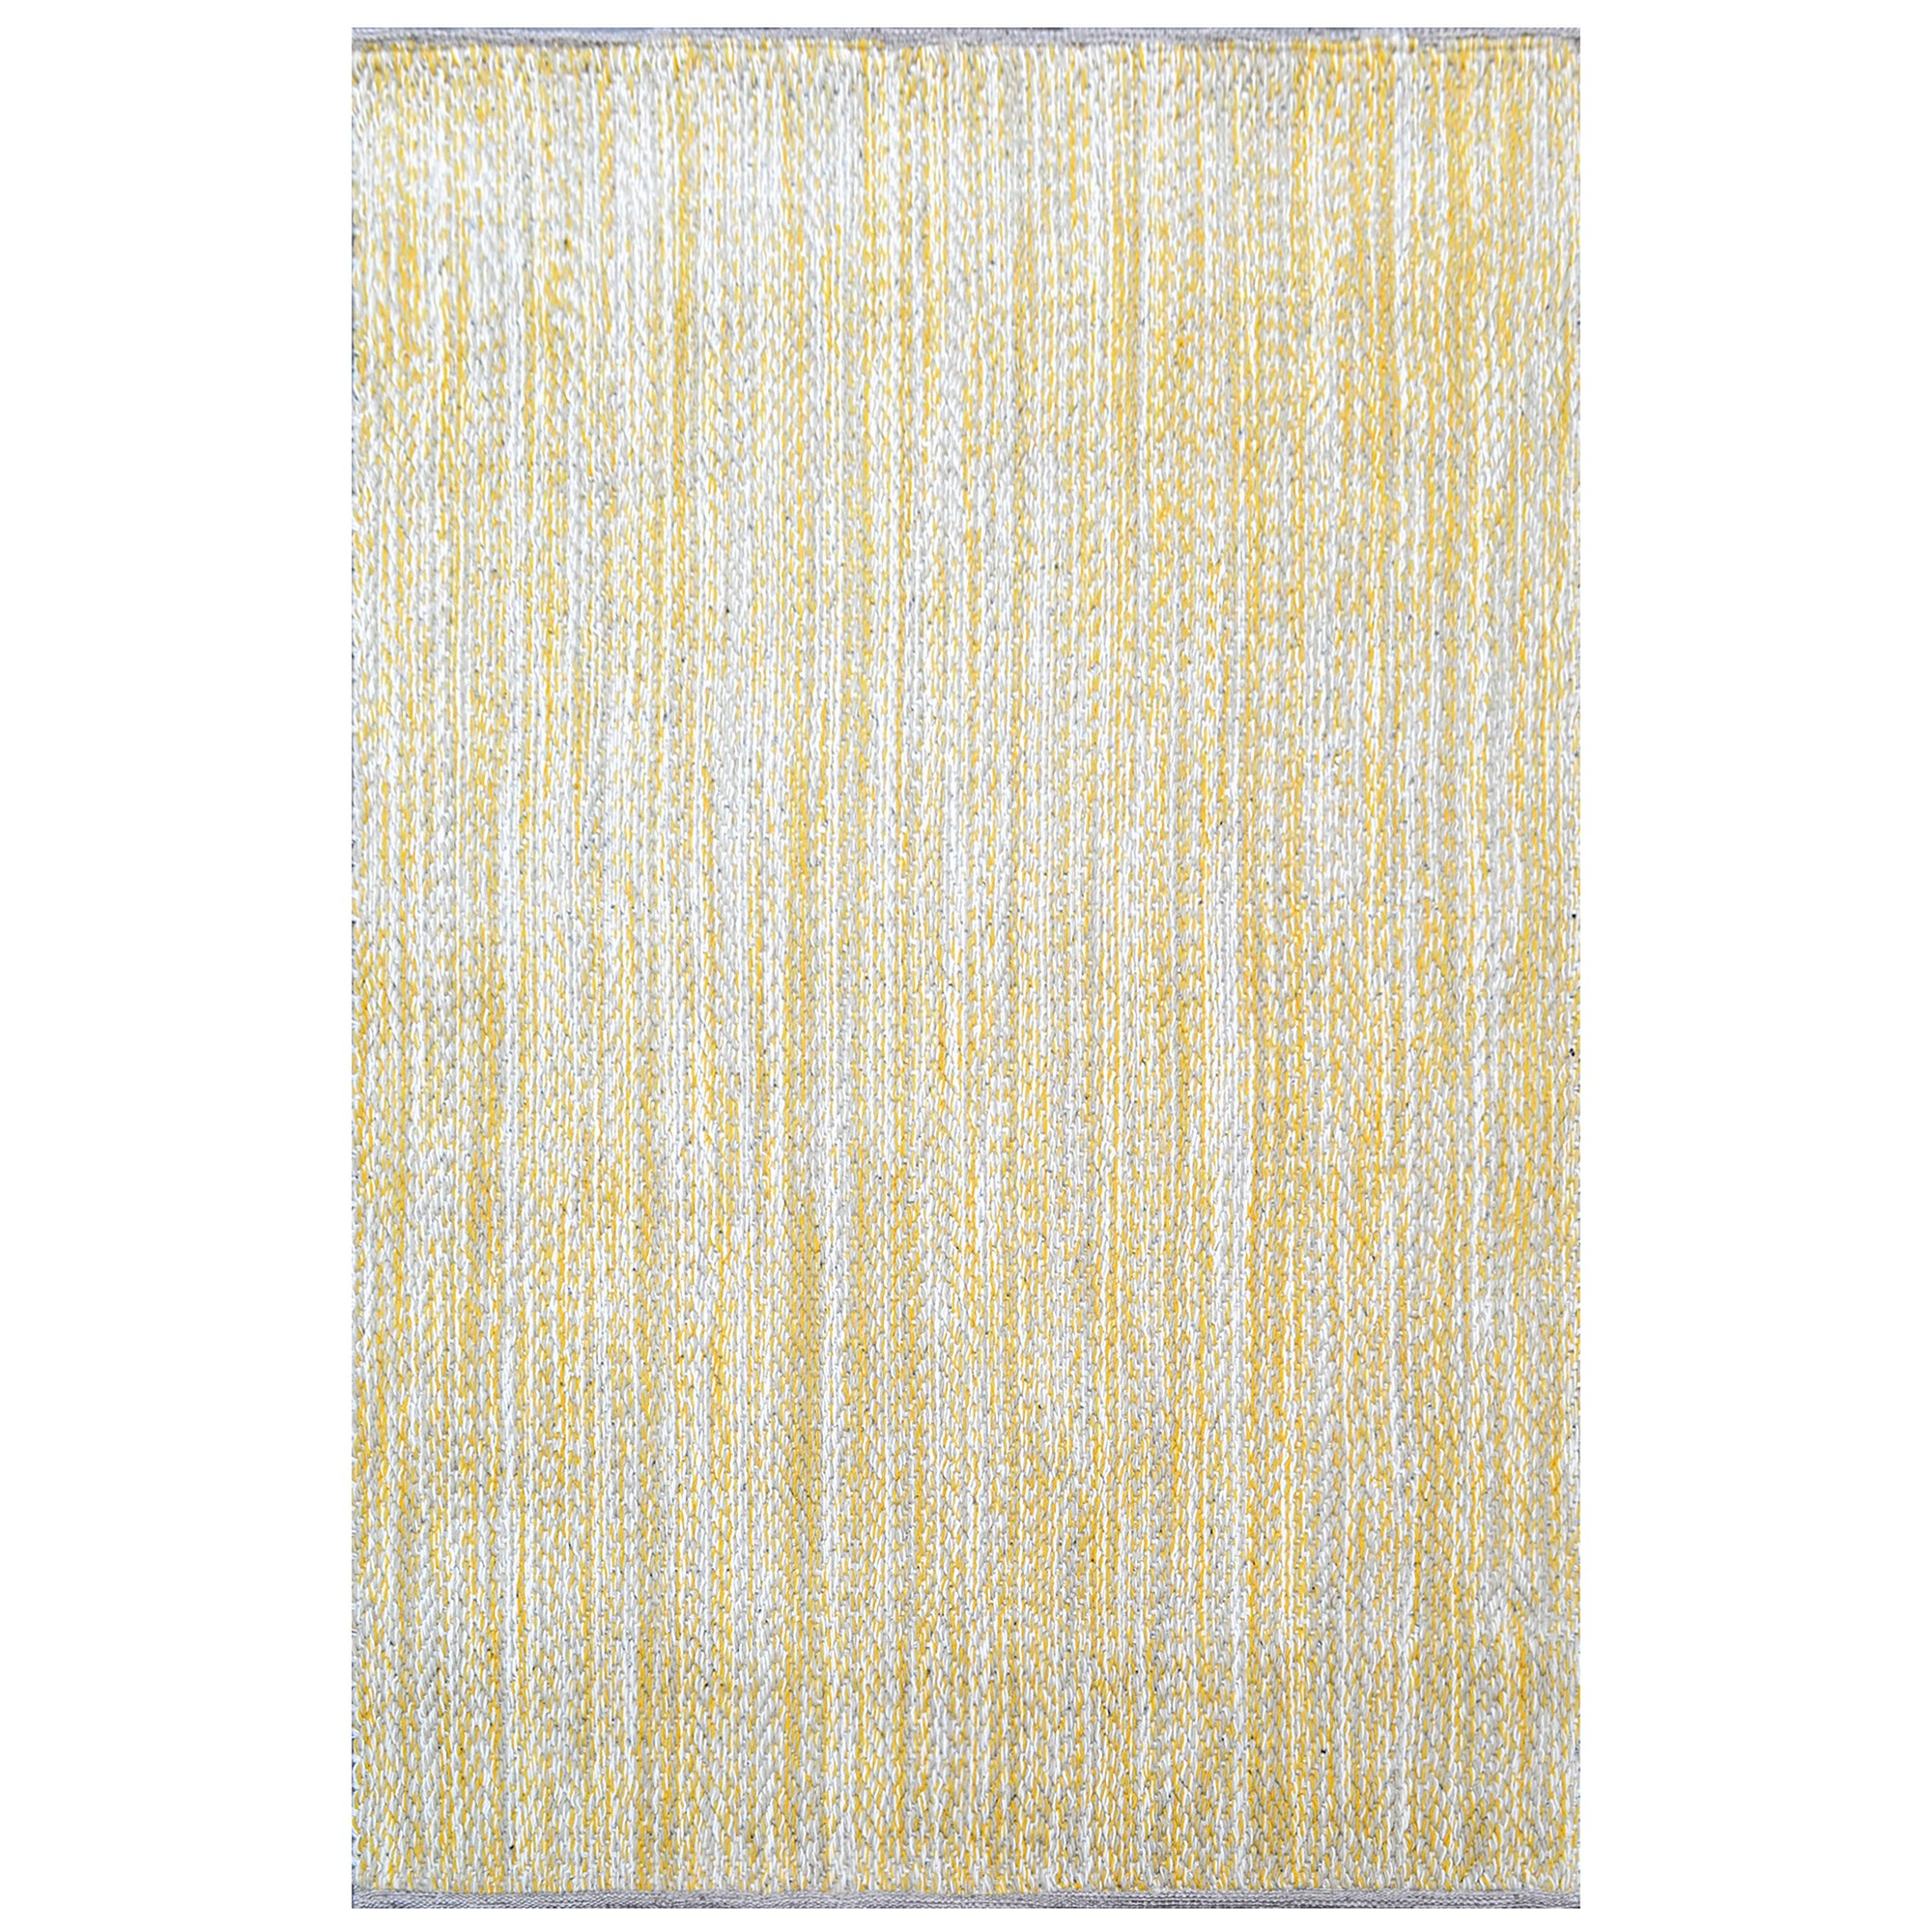 Cypress Handwoven Fine Wool Rug, 230x160cm, Yellow / Beige